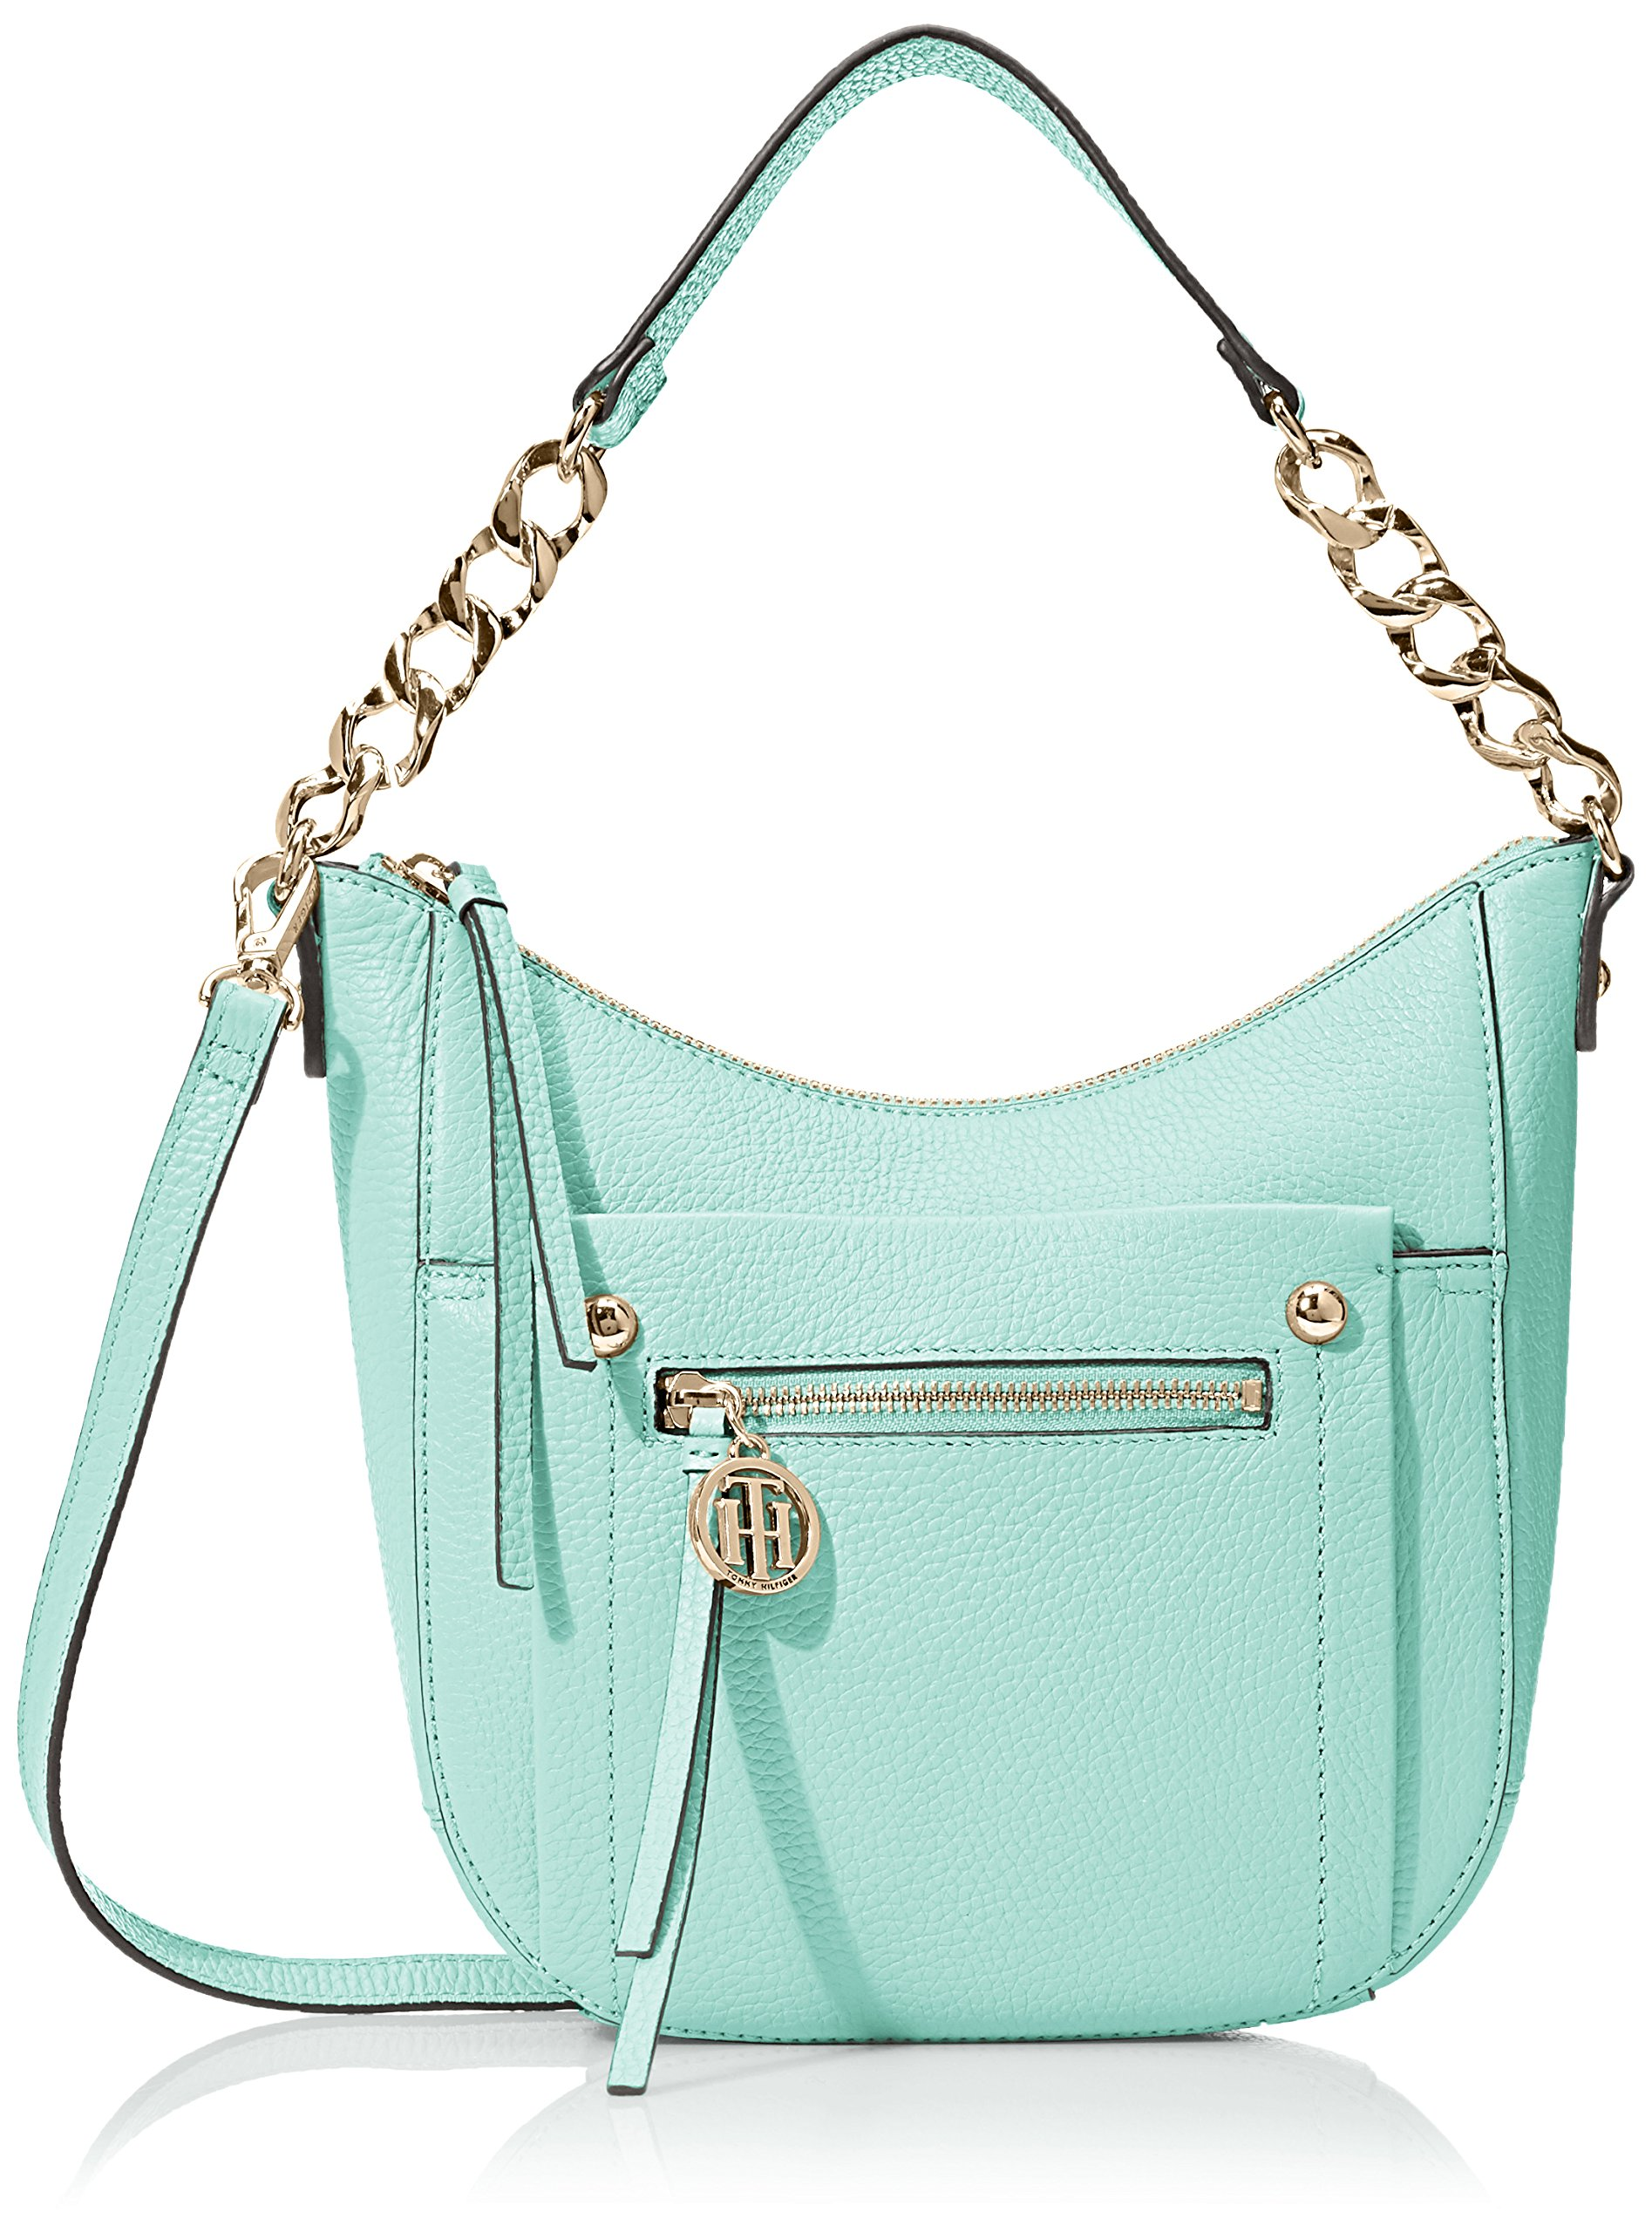 Tommy Hilfiger Tessa Hobo Bag, Sea Glass, One Size by Tommy Hilfiger